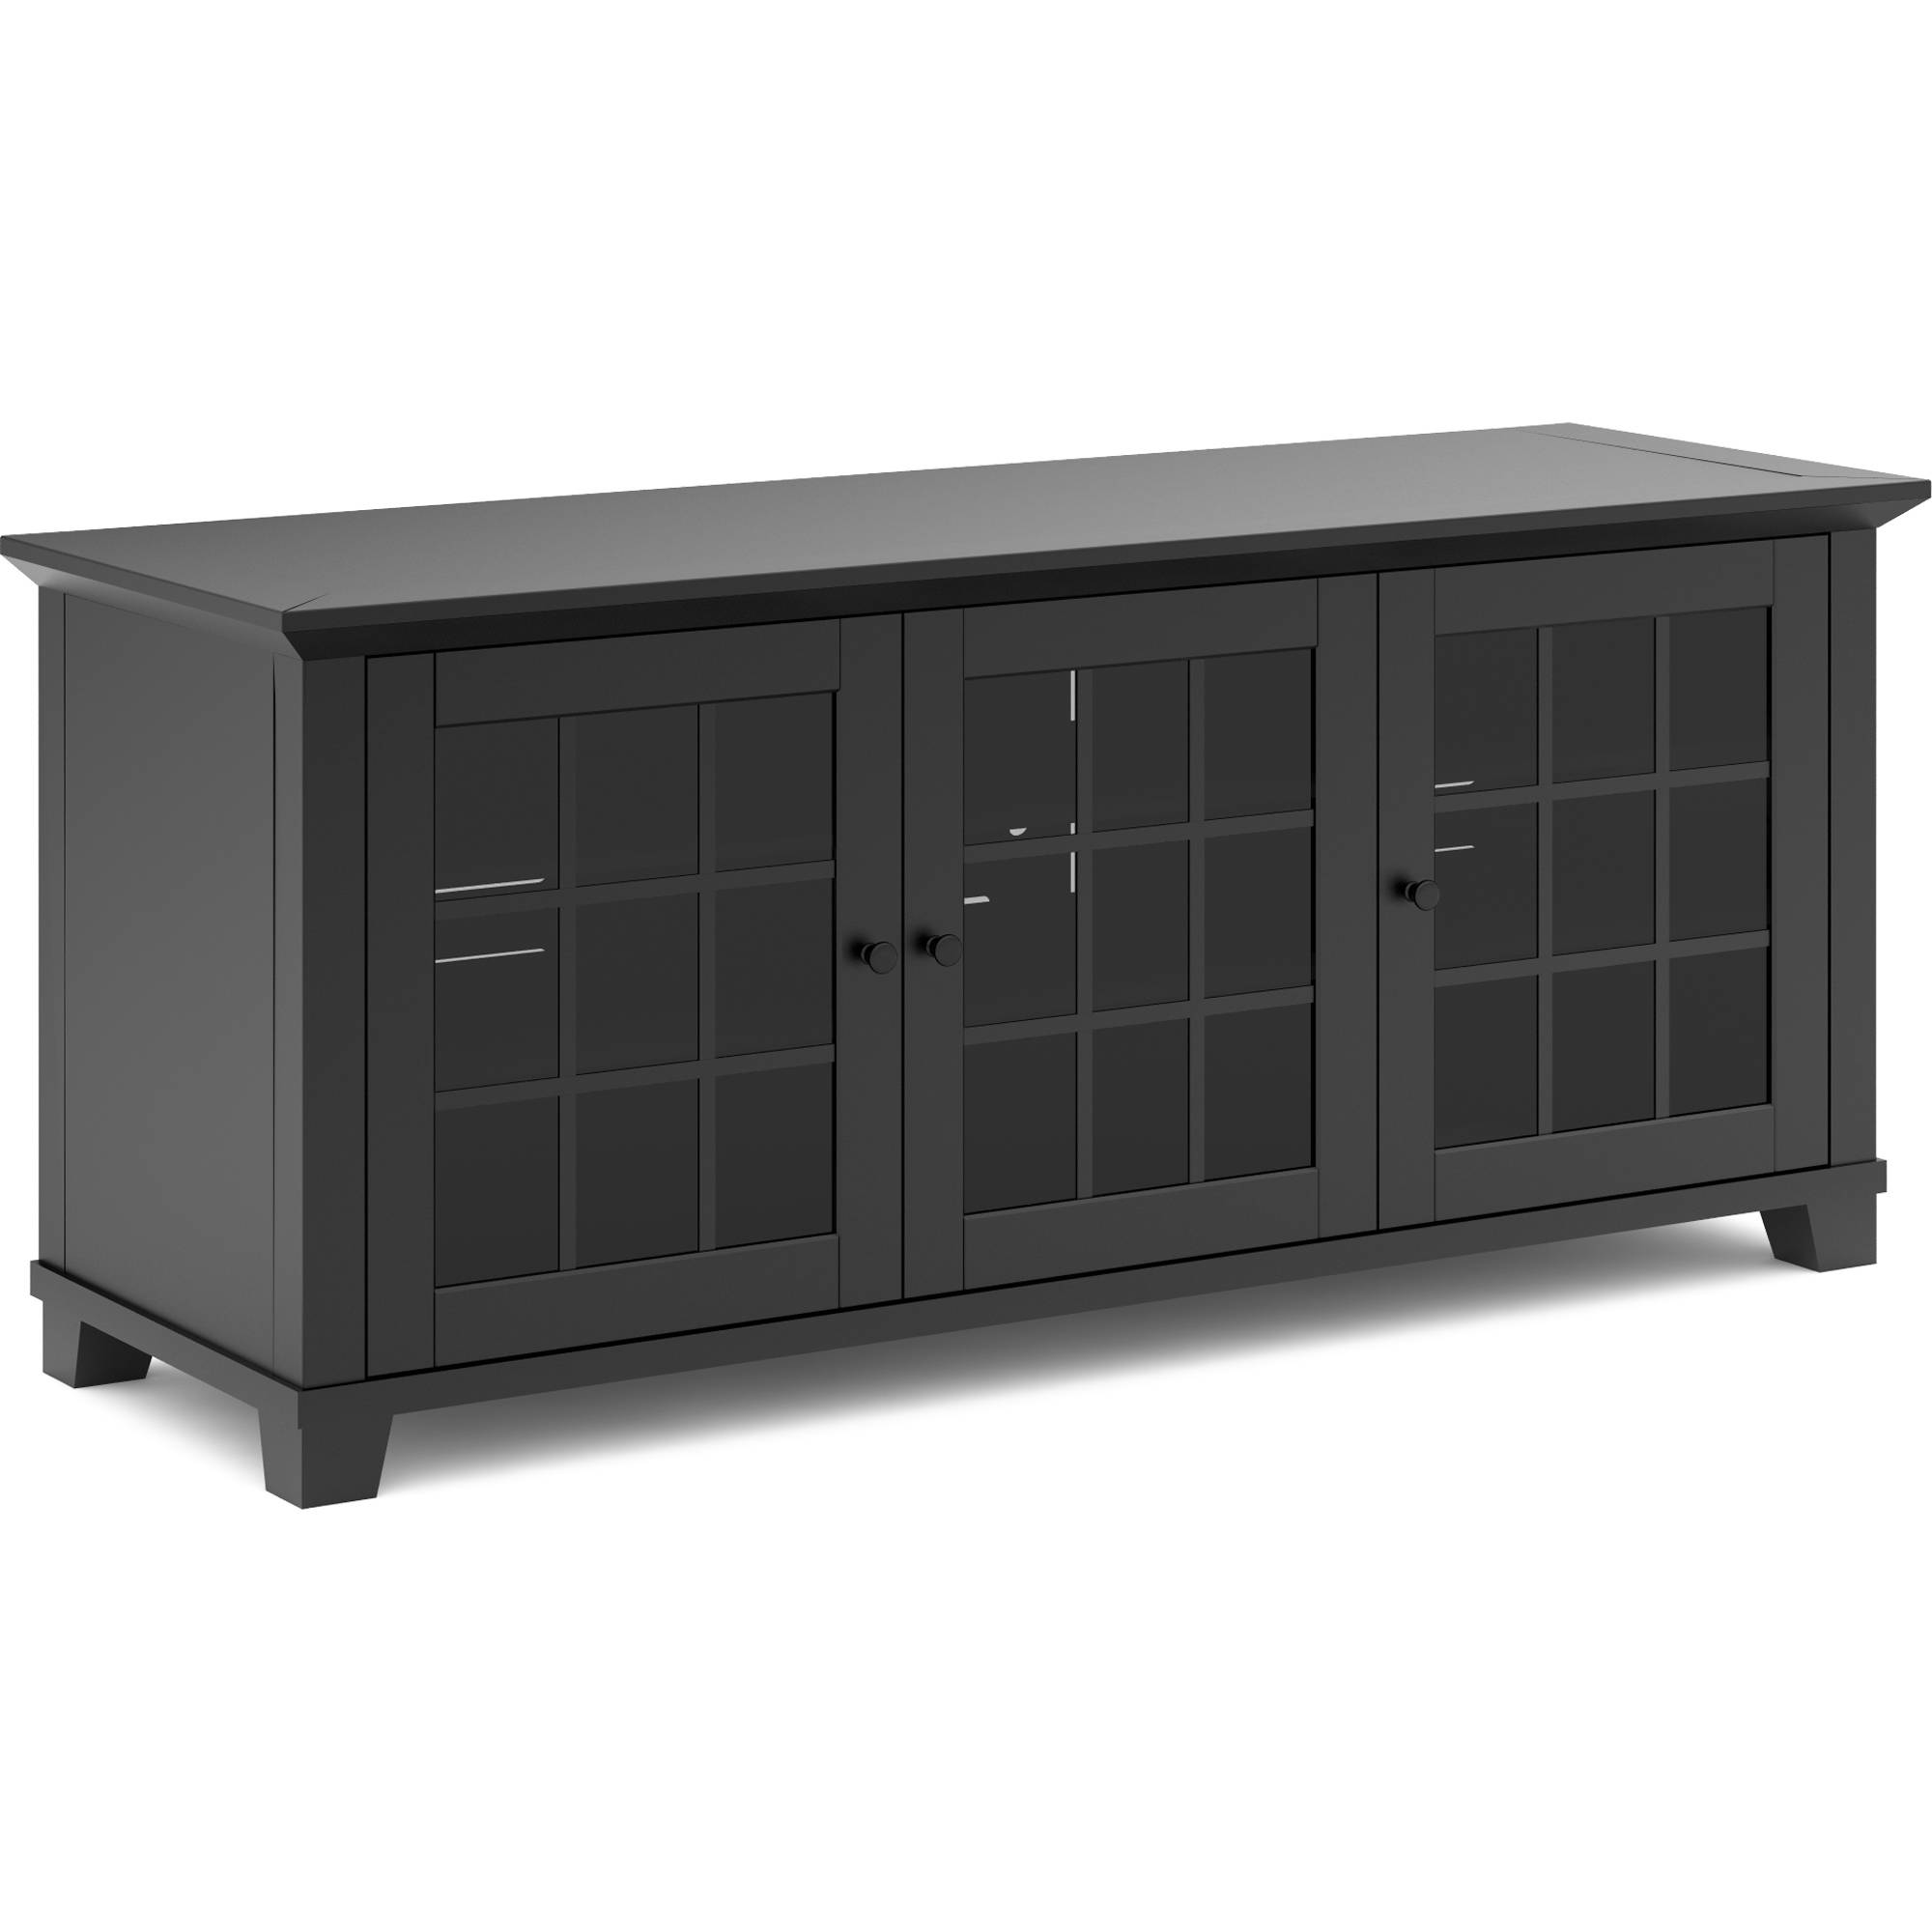 Salamander design audio video cabinet in matte sdav1 6626 for Matte black kitchen doors